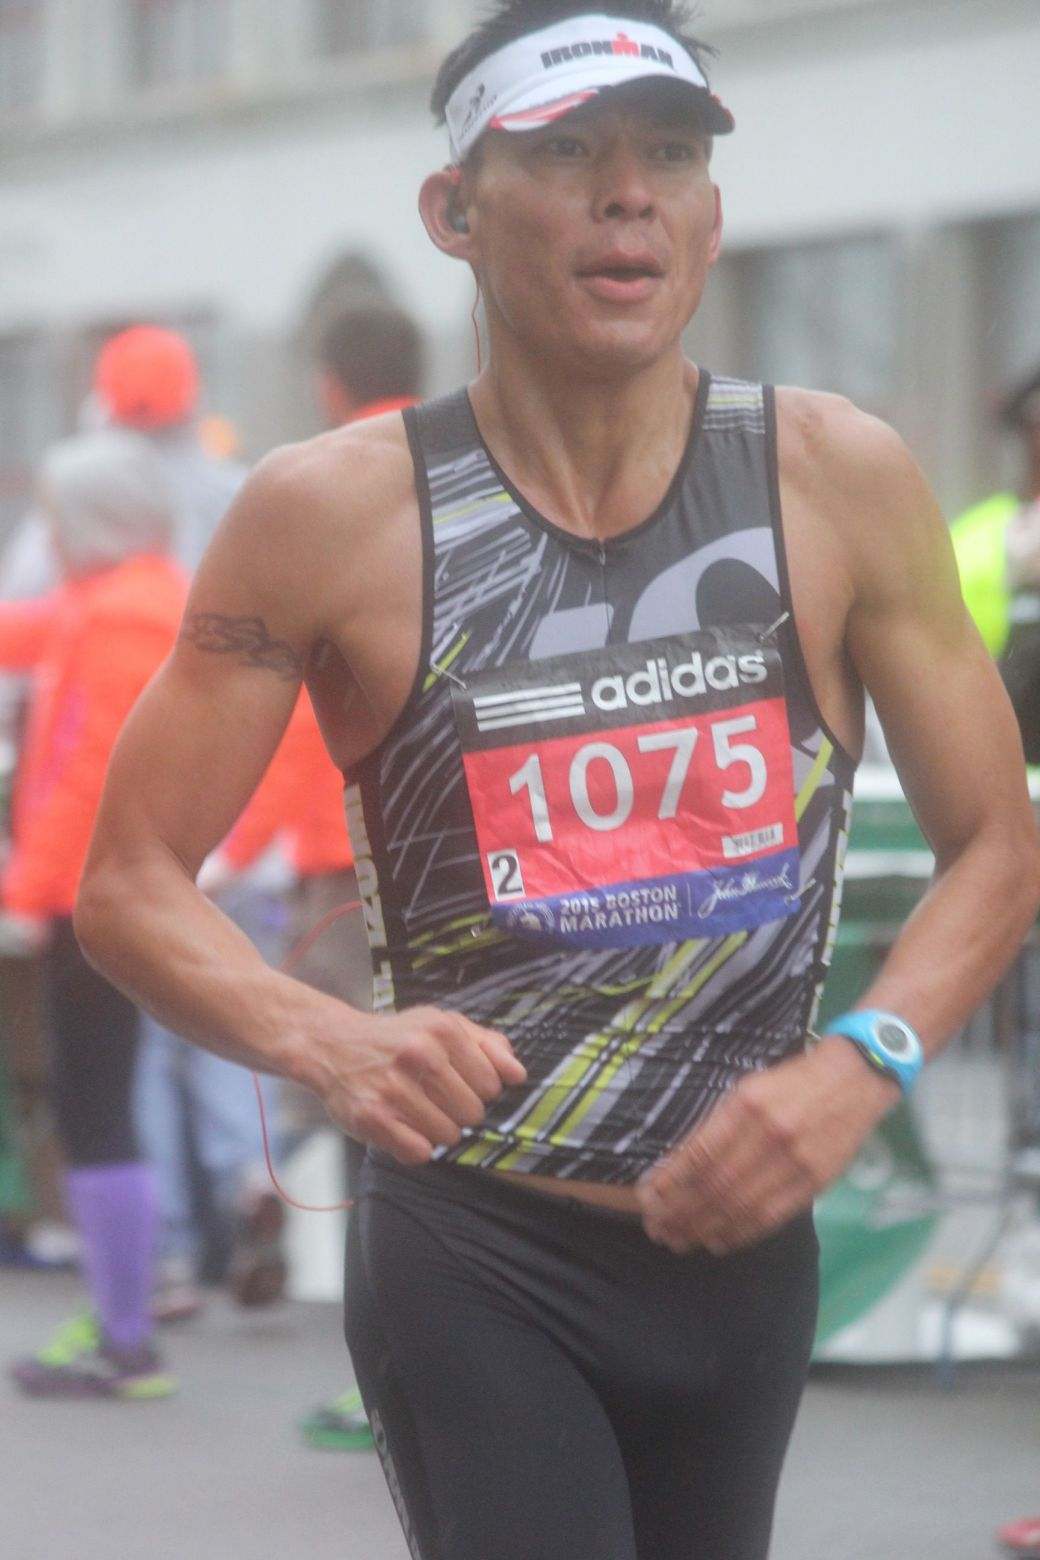 boston marathon april 20 2015 racer number 1075